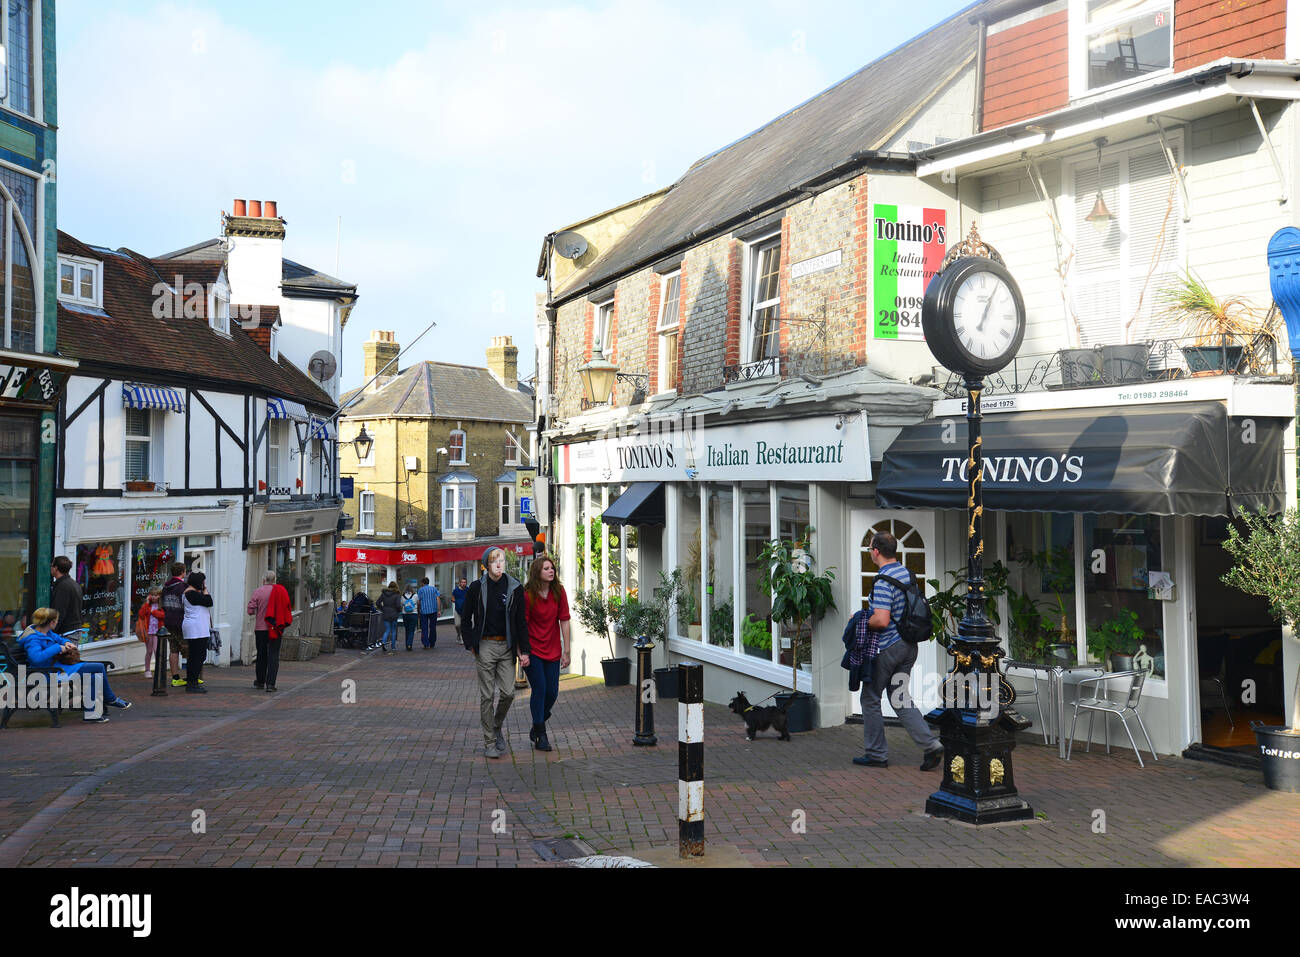 Shooters Hill, High Street, Cowes, Isle of Wight, England, United Kingdom - Stock Image